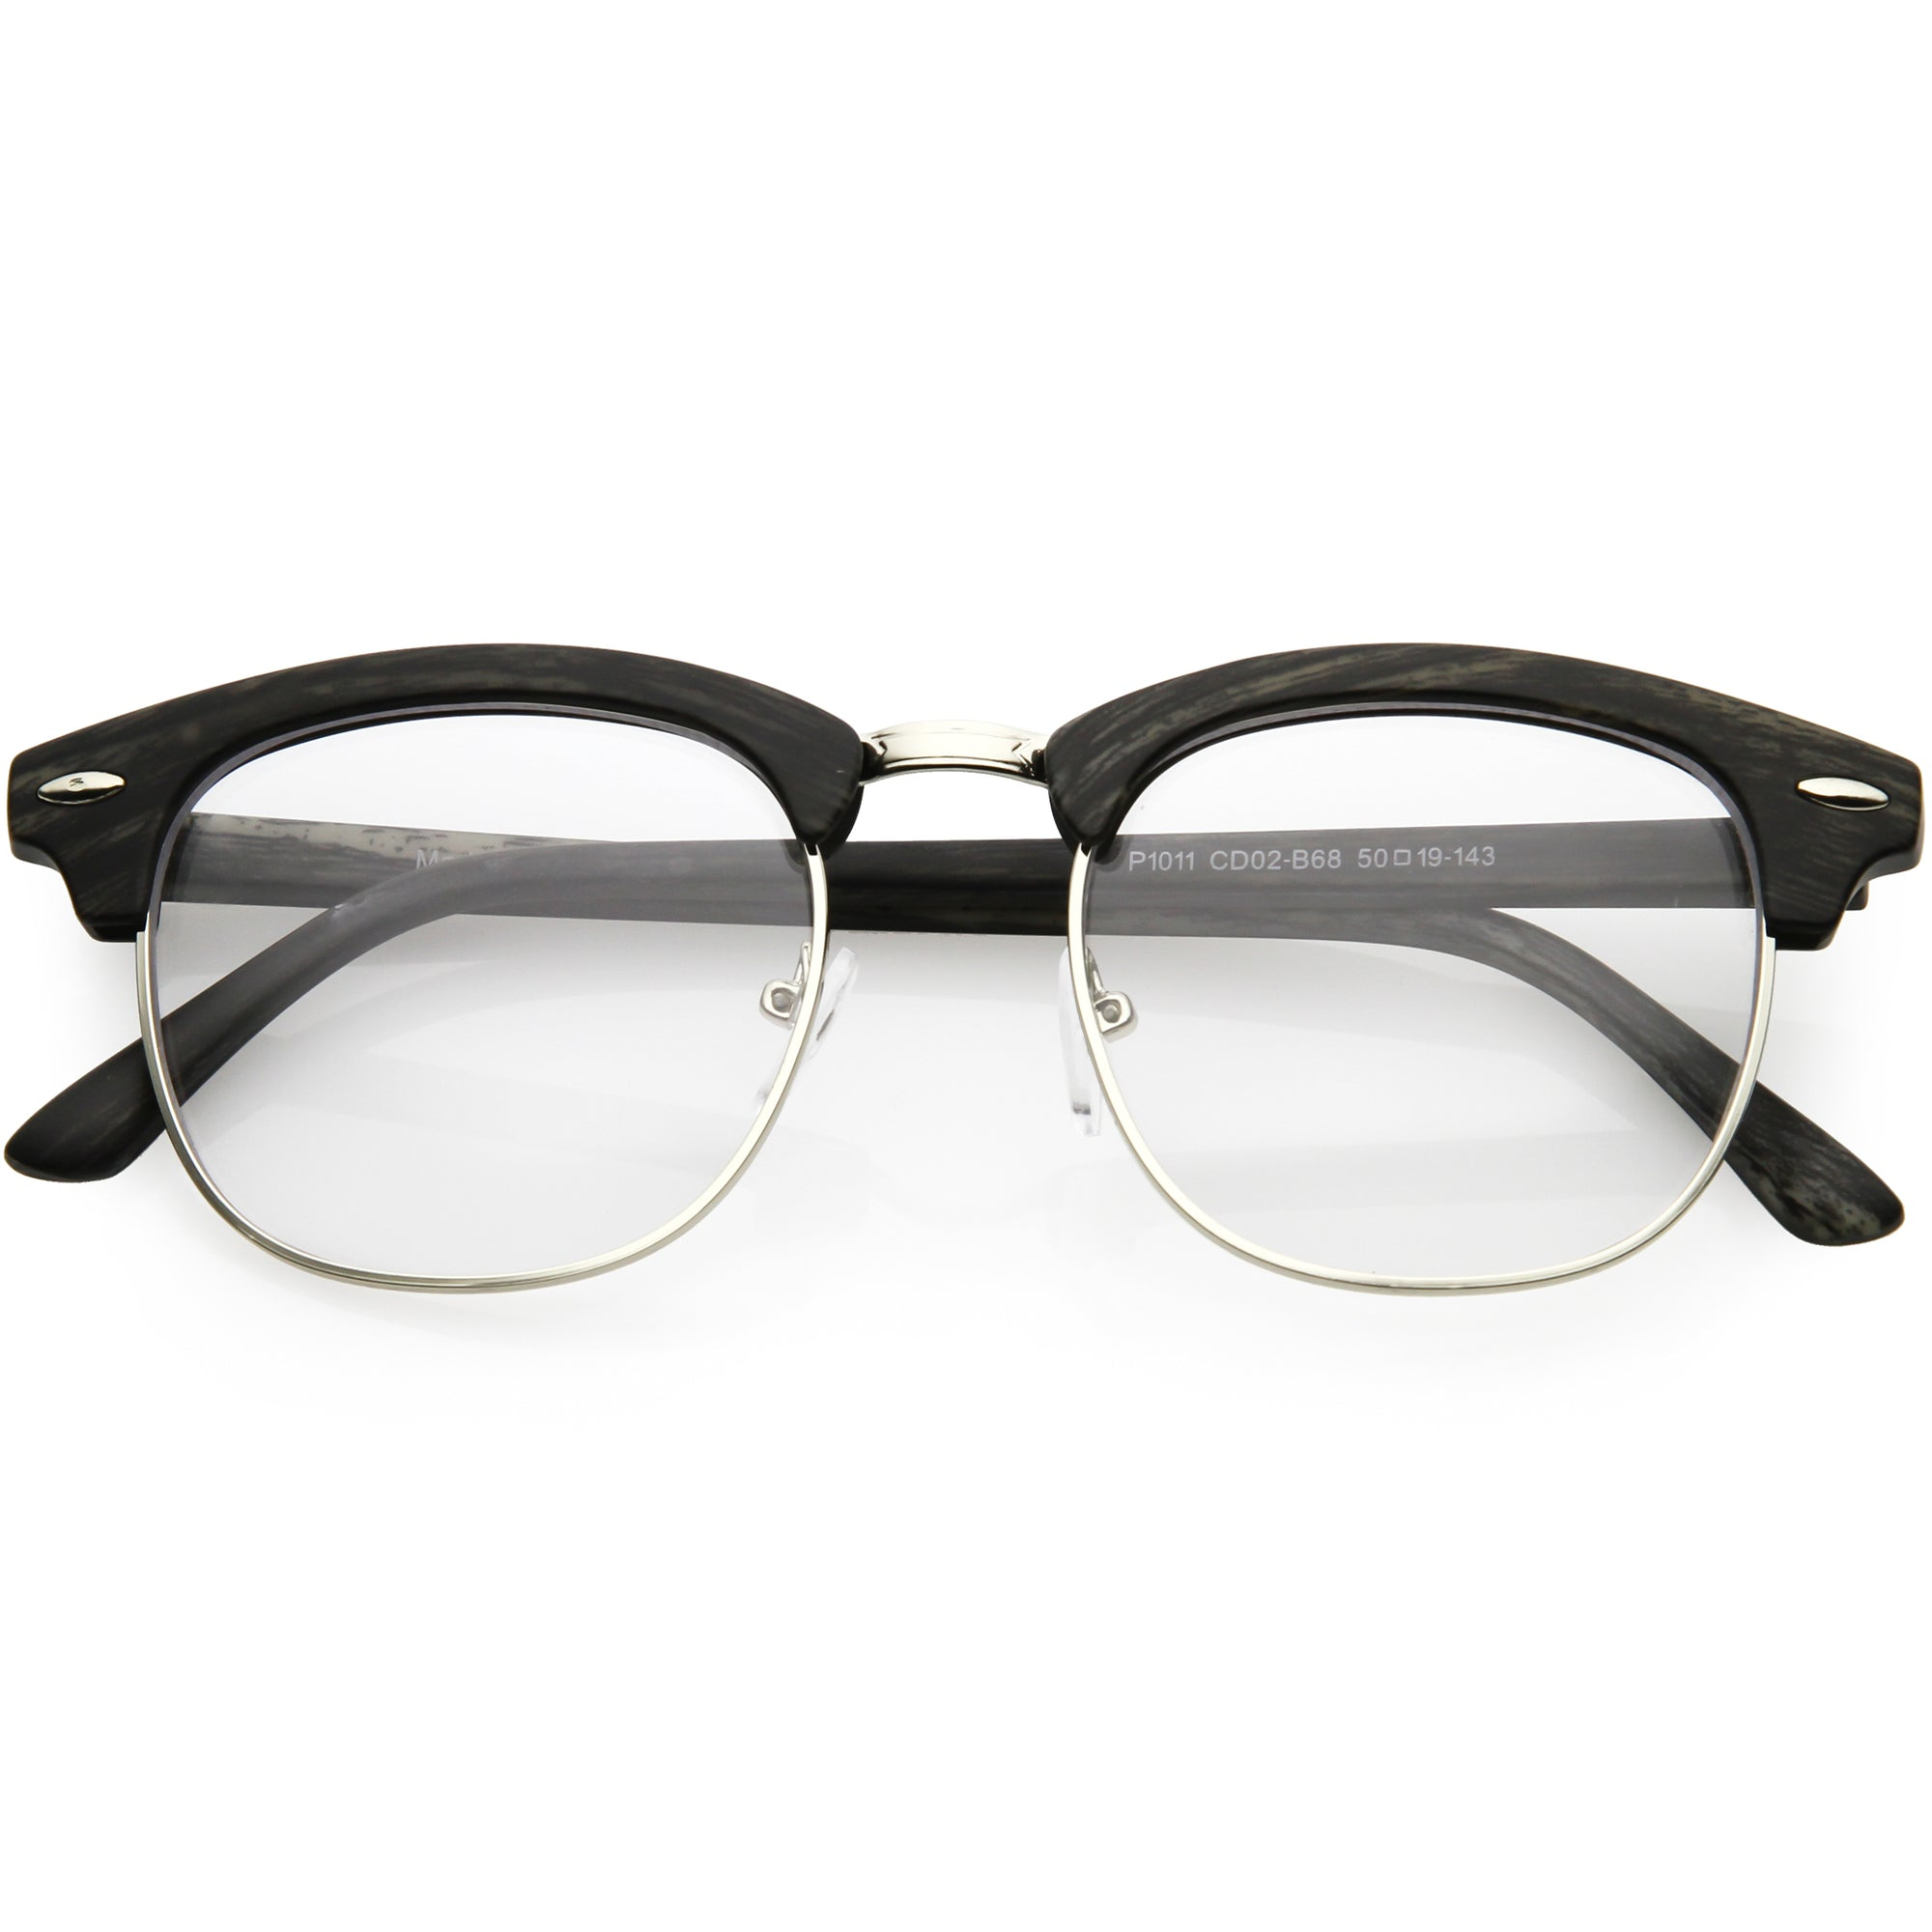 3b45606fb0 Matte Black Wood Clear. Matte Black Wood Clear · Classic Dapper Half Frame  Horned Rim Clear Lens Glasses C846